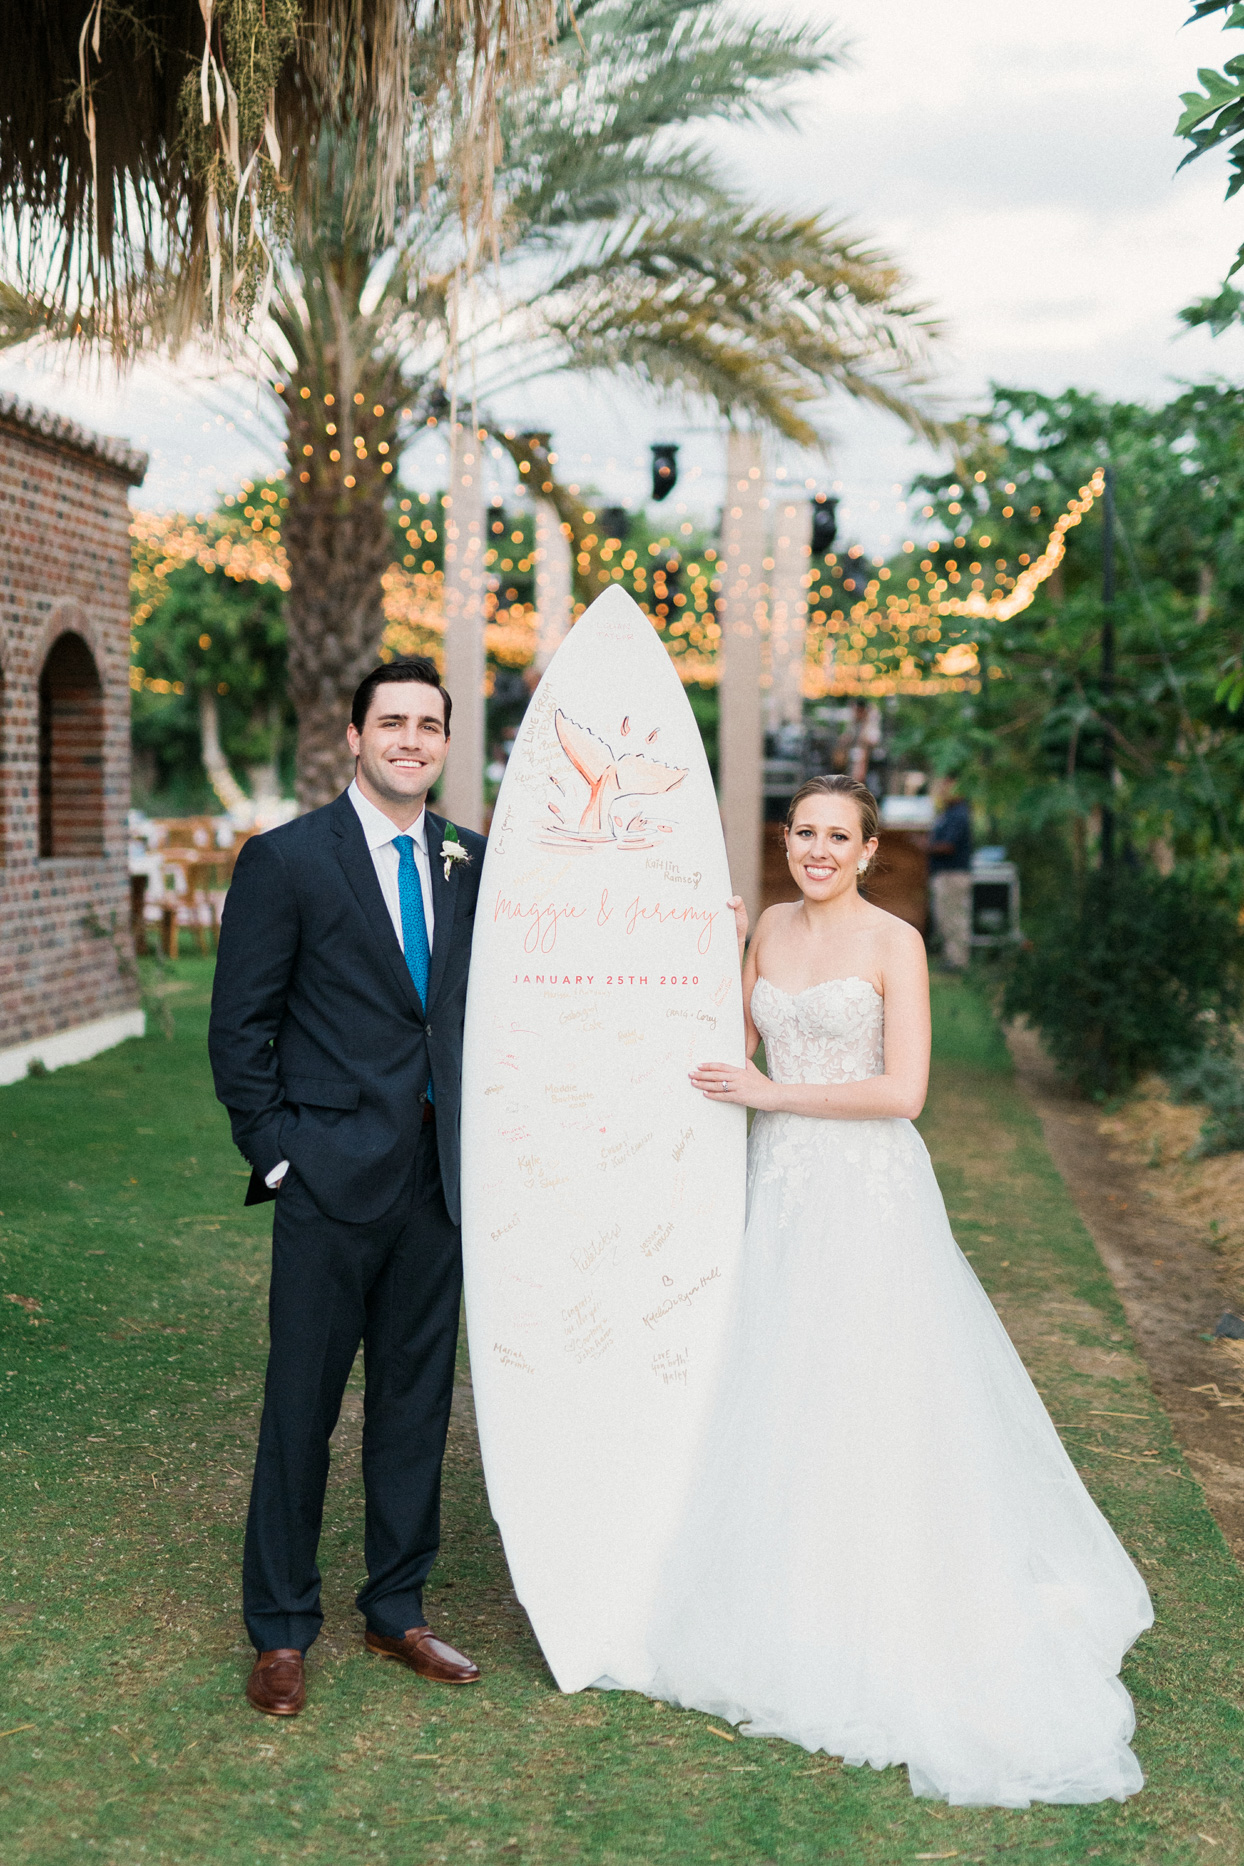 bride and groom posing with guest book surf board